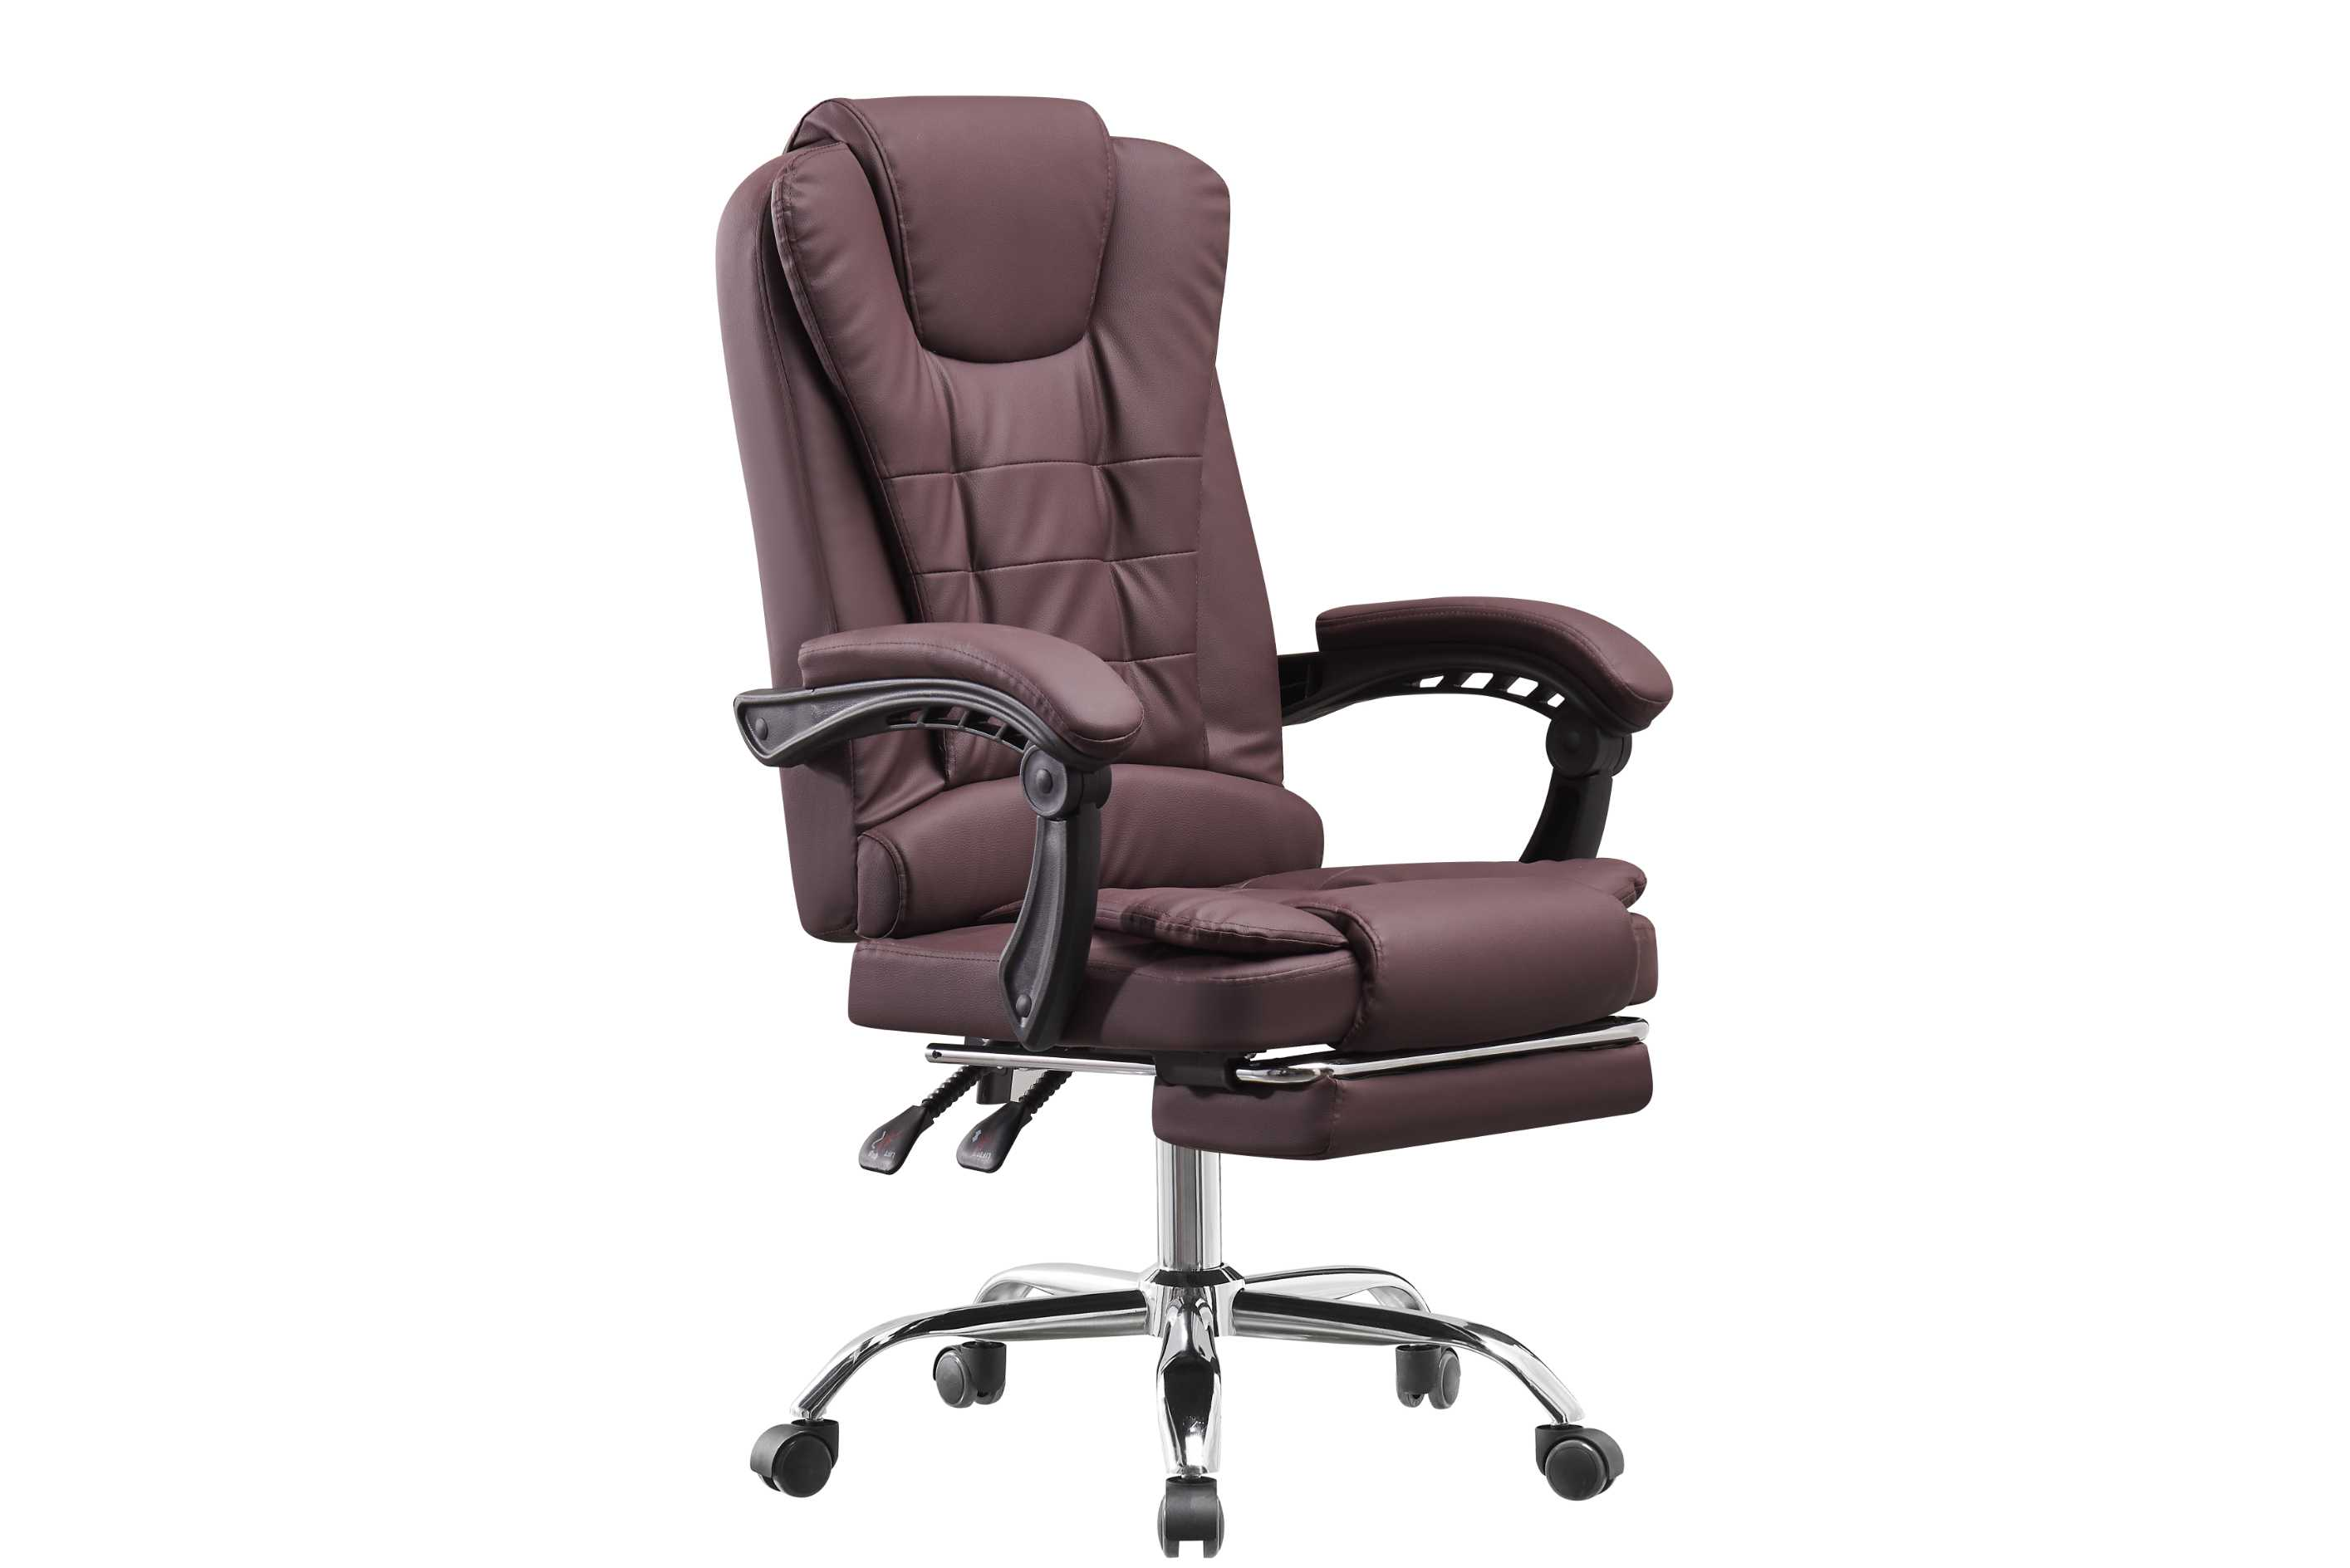 Swivel Chair Back Parts Office Chair Fabric Back Style Furniture Nylon Material Origin Type Lift Gua Size General Place